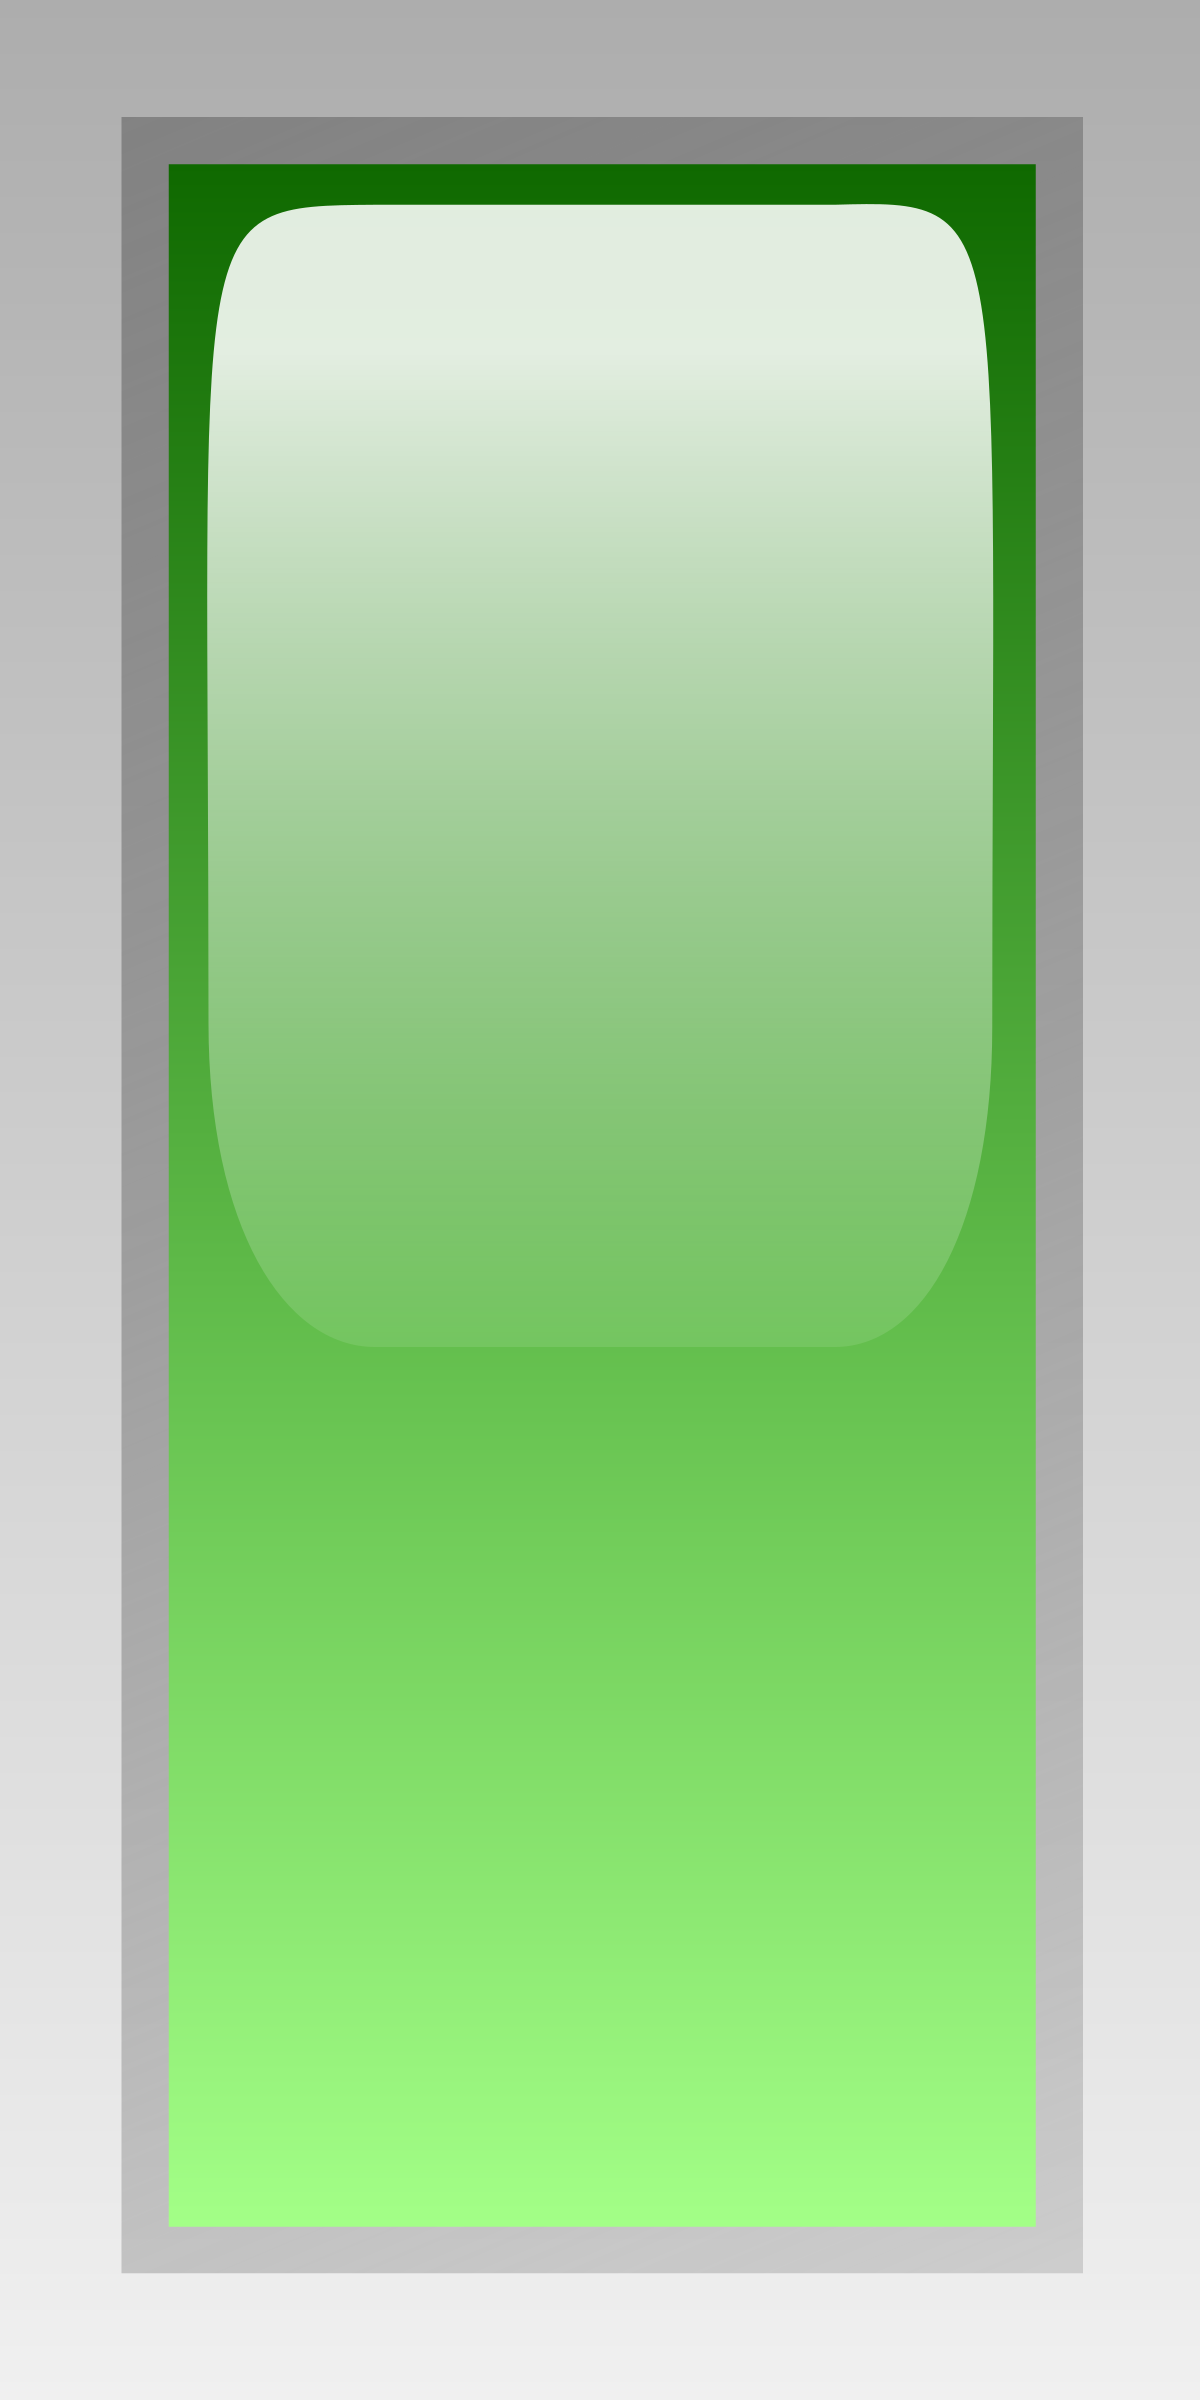 led rectangular v green by jean_victor_balin